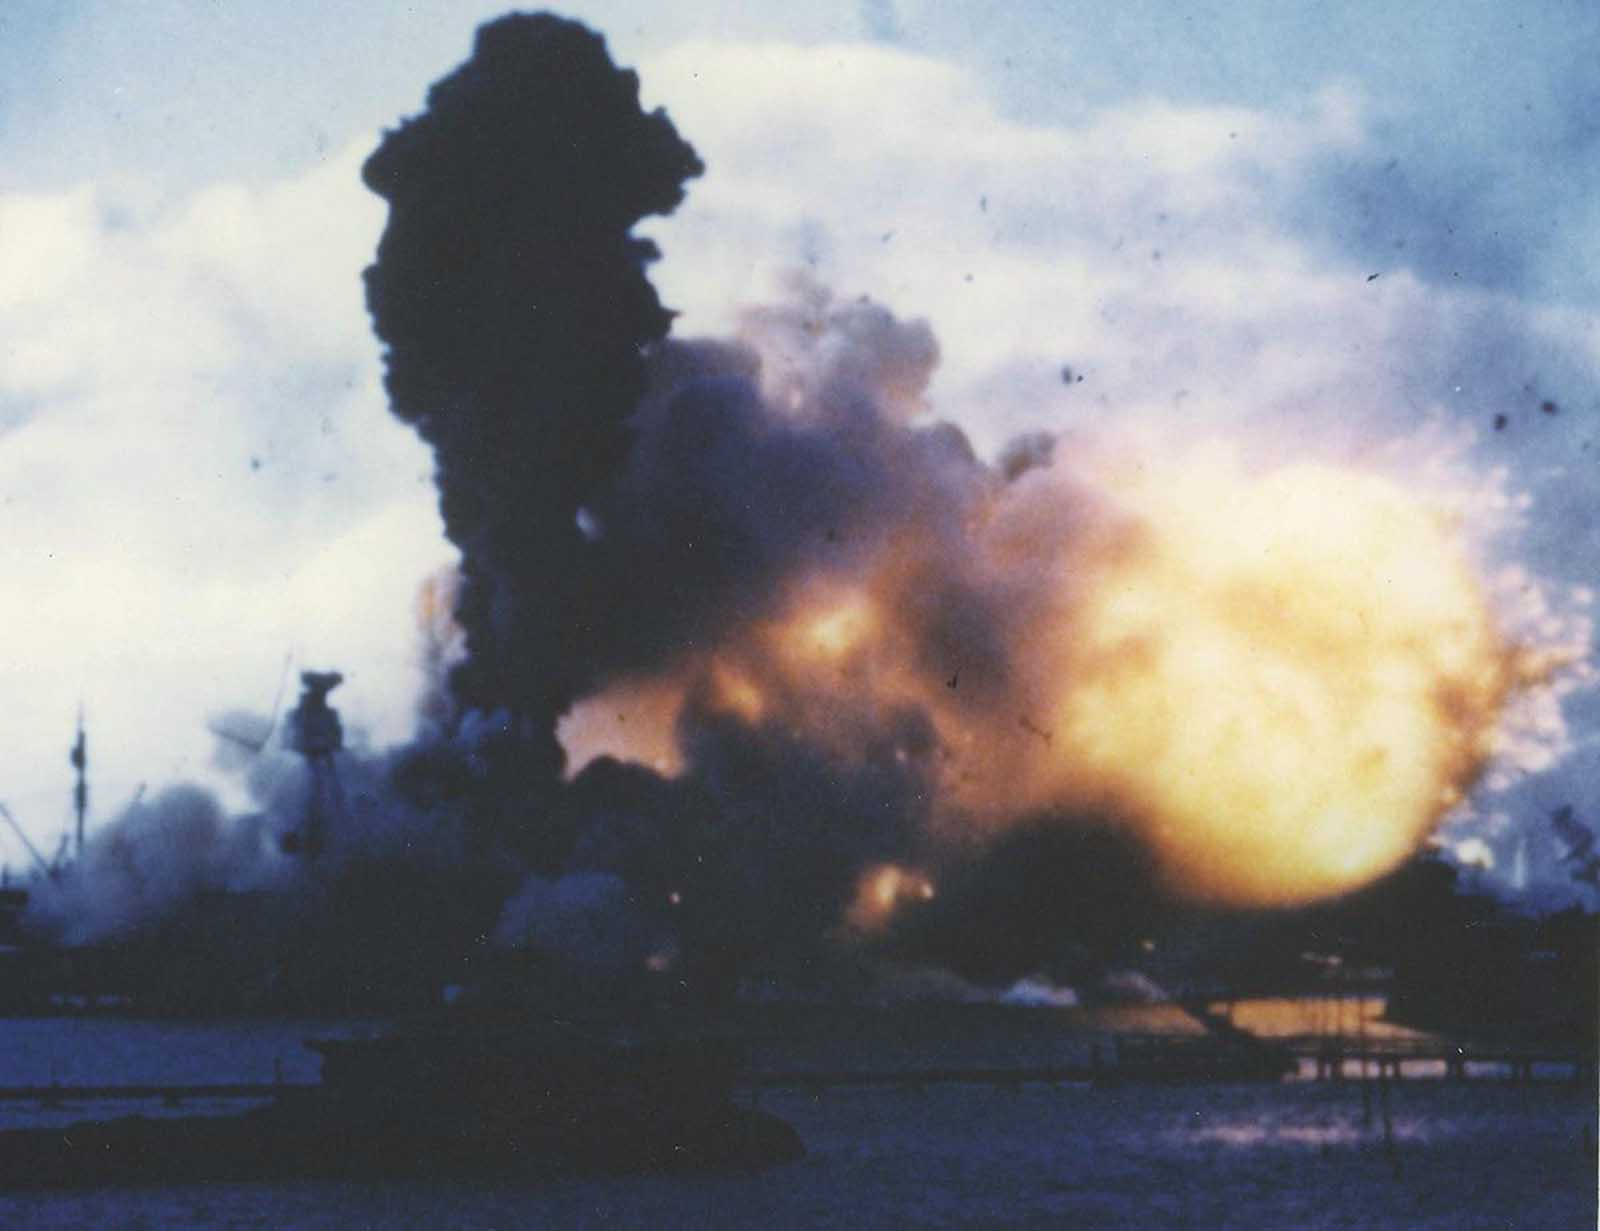 The forward magazines of USS Arizona explode after she was hit by a Japanese bomb on December 7, 1941. Frame clipped from a color motion picture taken from on board USS Solace.